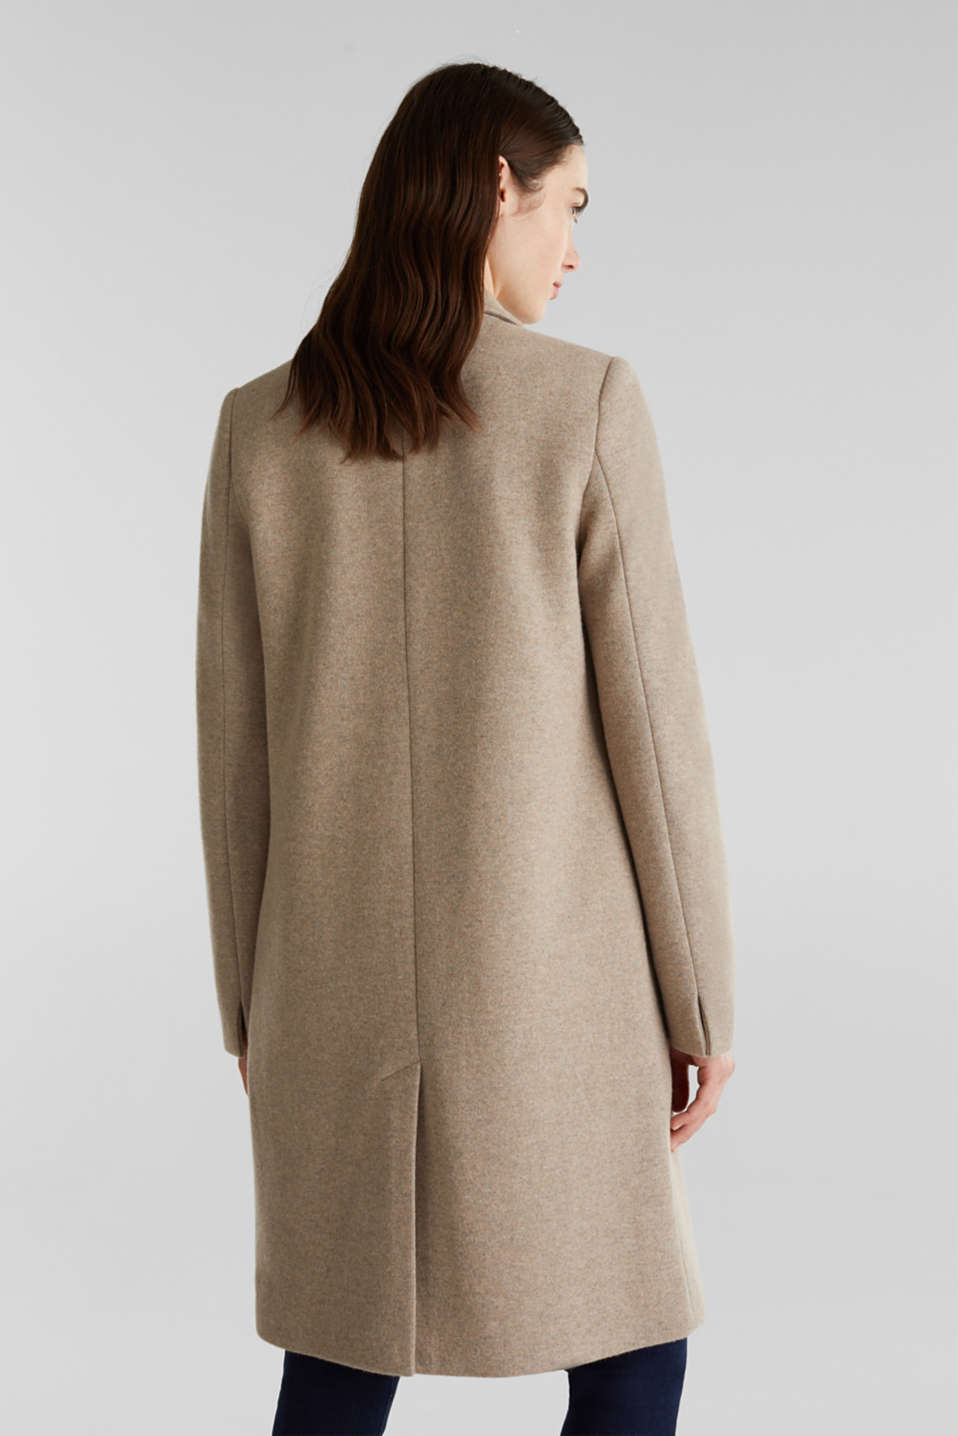 Made of blended wool: ready-to-wear knit coat, BEIGE 5, detail image number 2